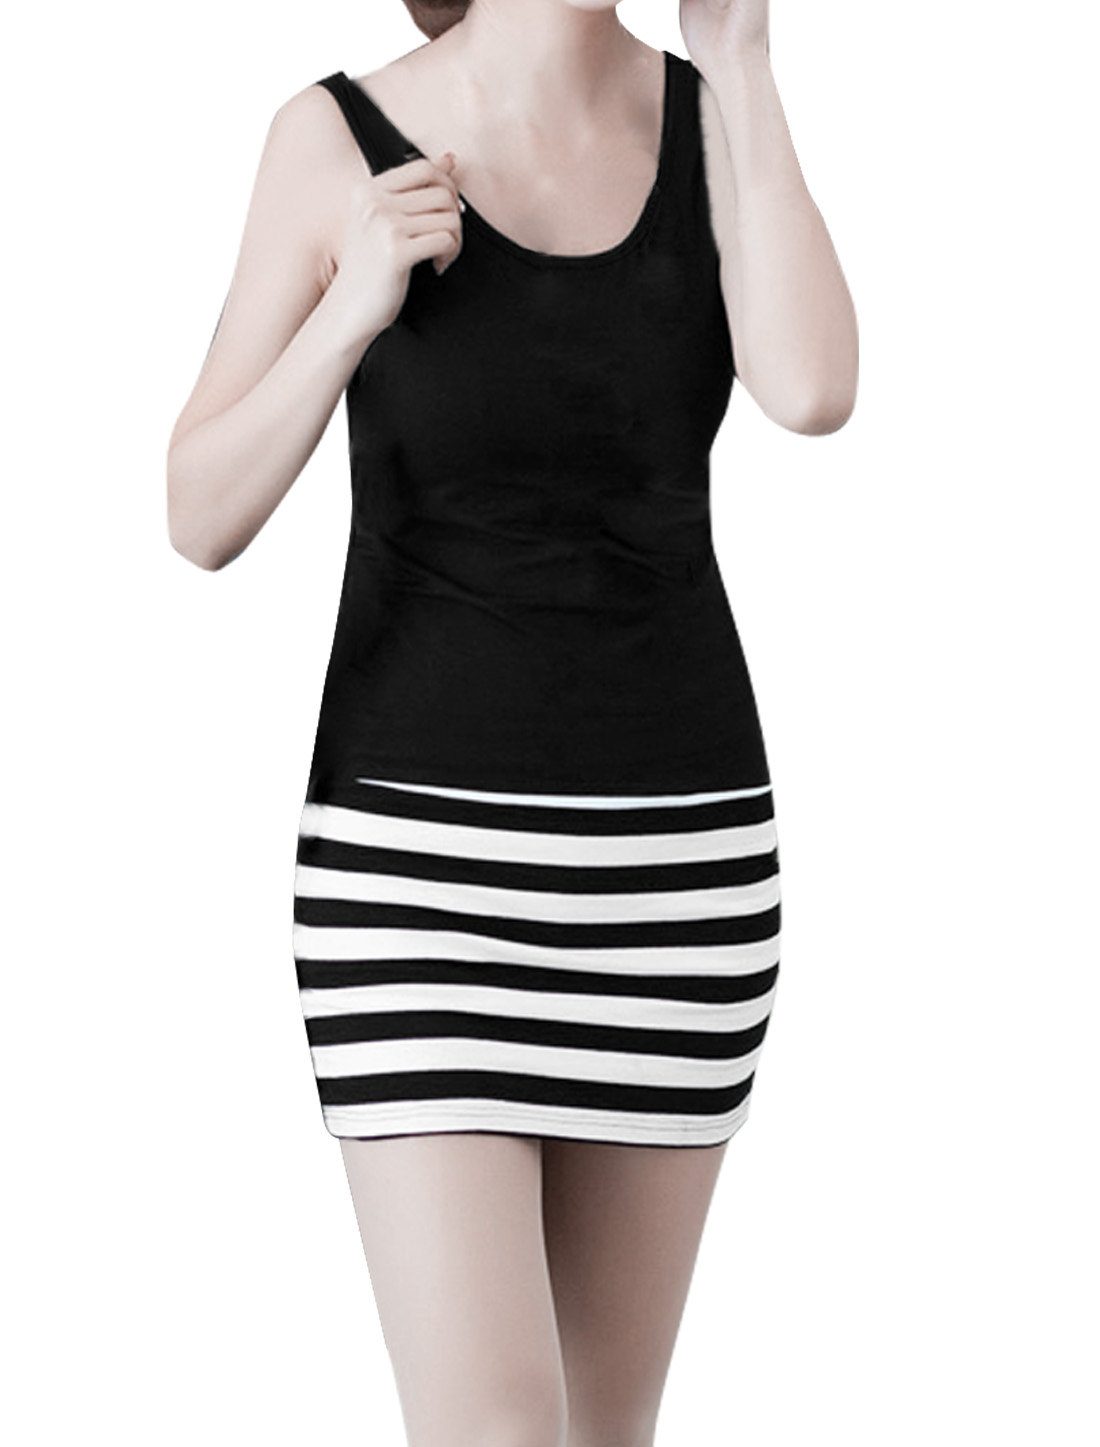 Women Stretchy Stripes Pattern Panel Mini Tank Dress Black White L